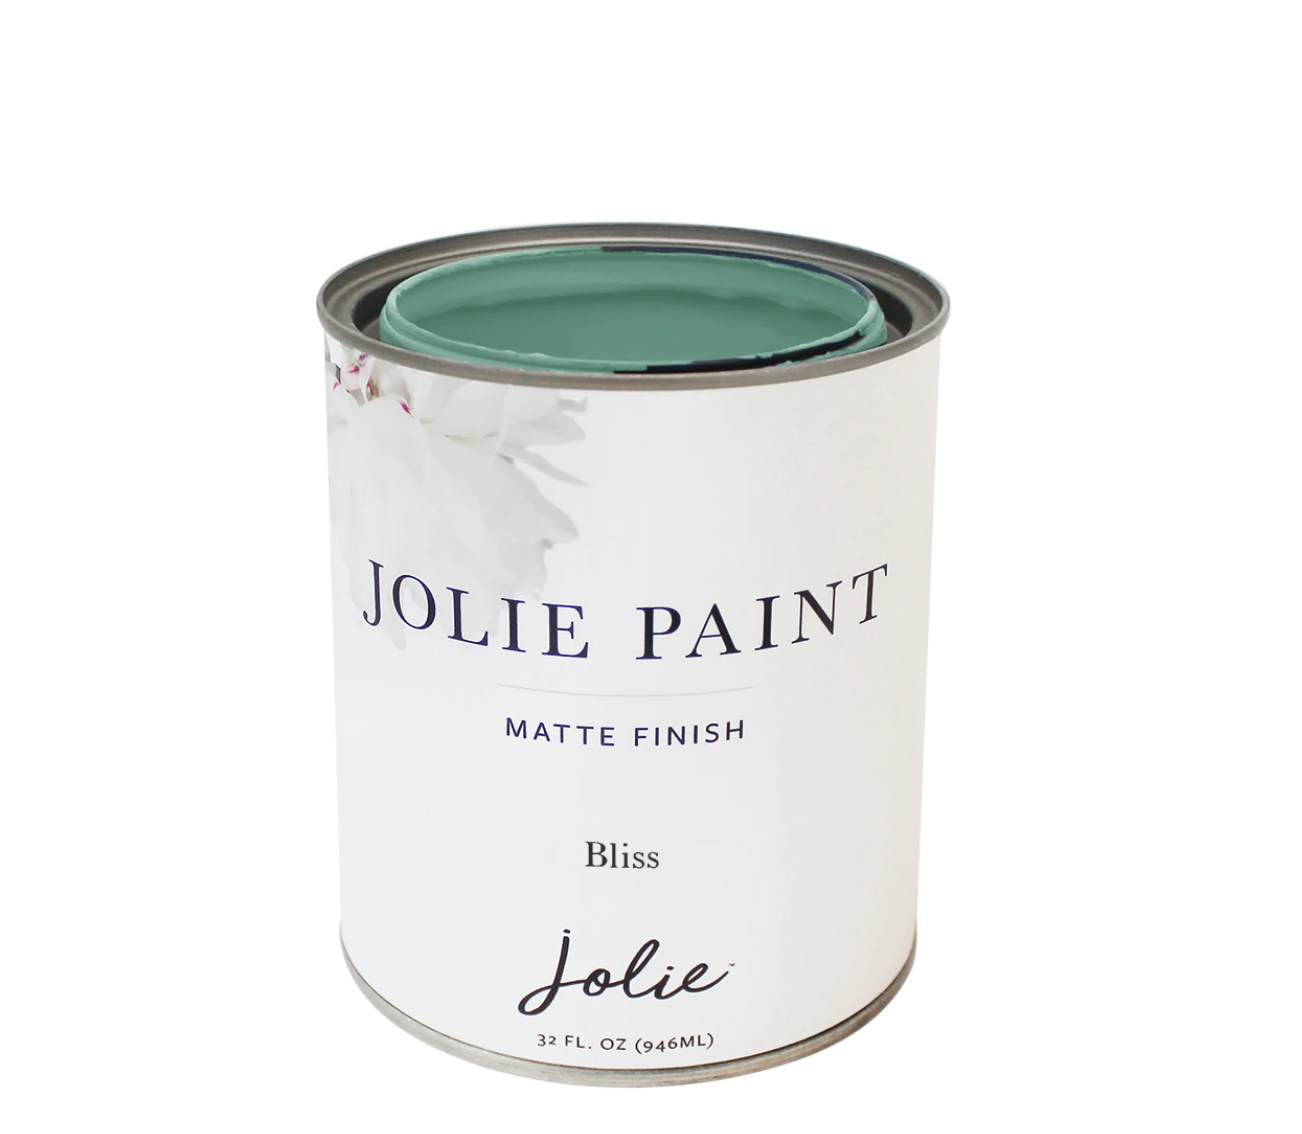 Jolie 1 qt. paint (Bliss)